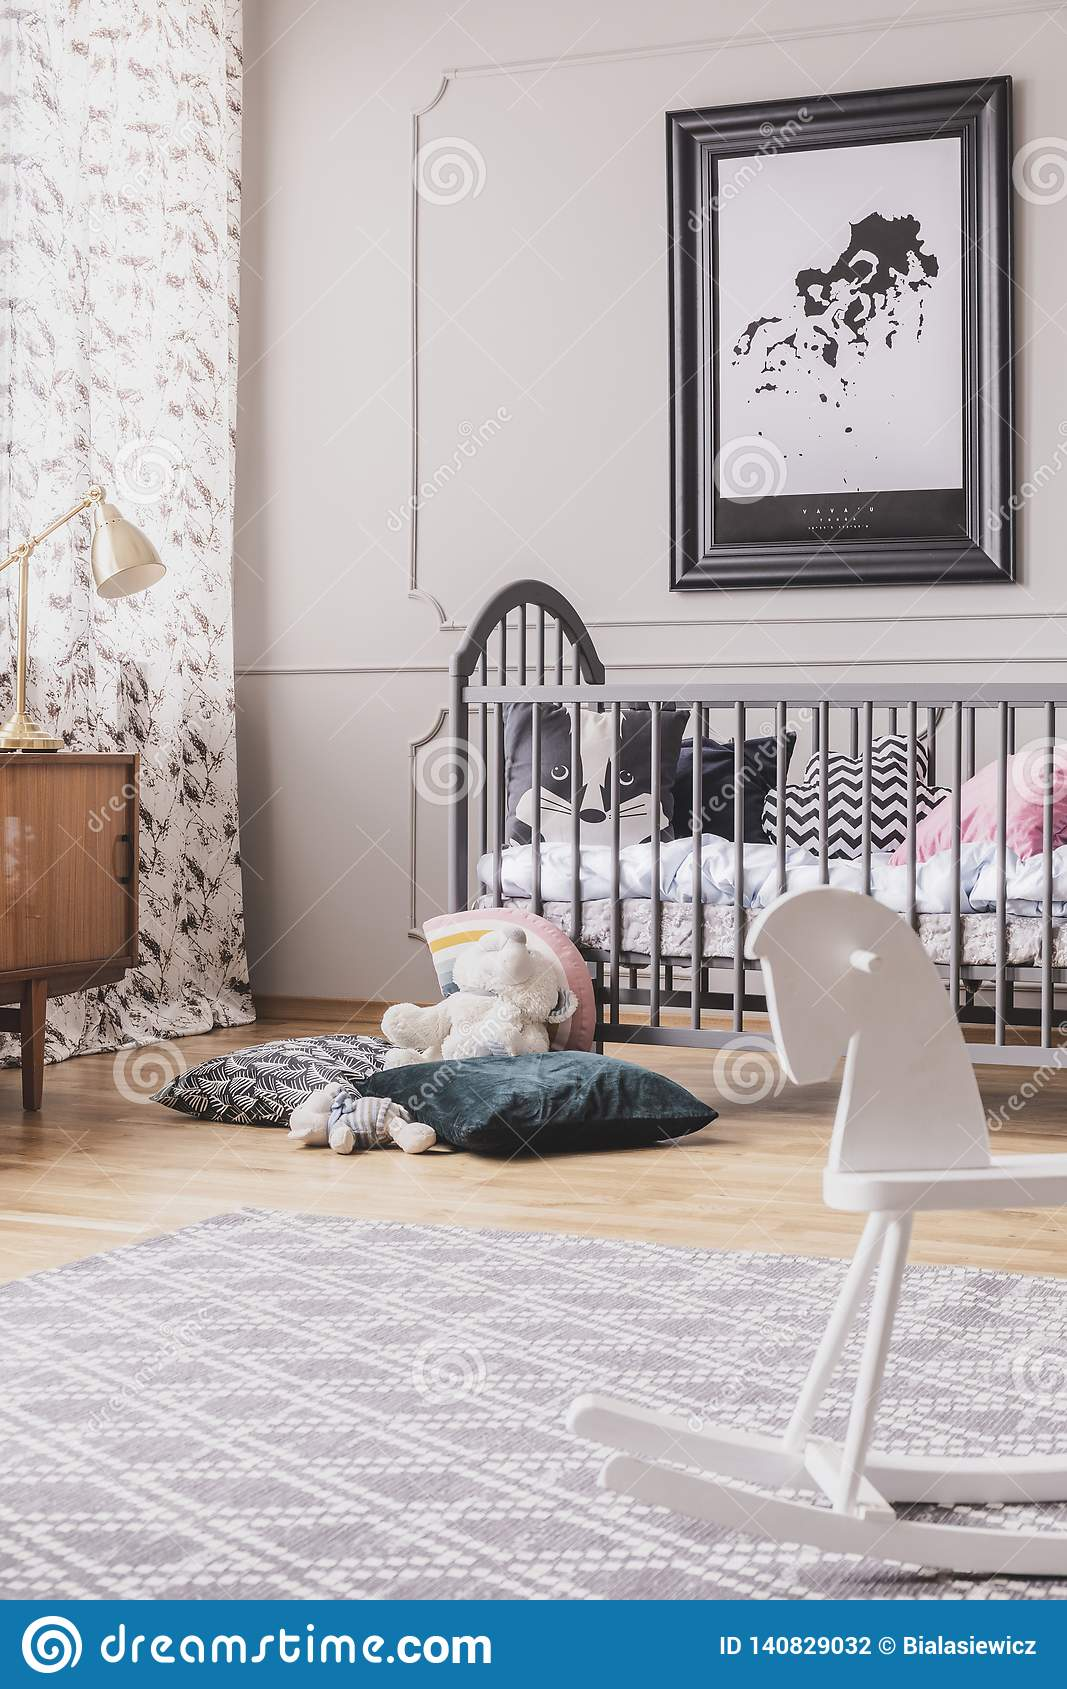 Vertical view of black and white map in frame above wooden crib with pillows, real photo with carpet on the wooden floor